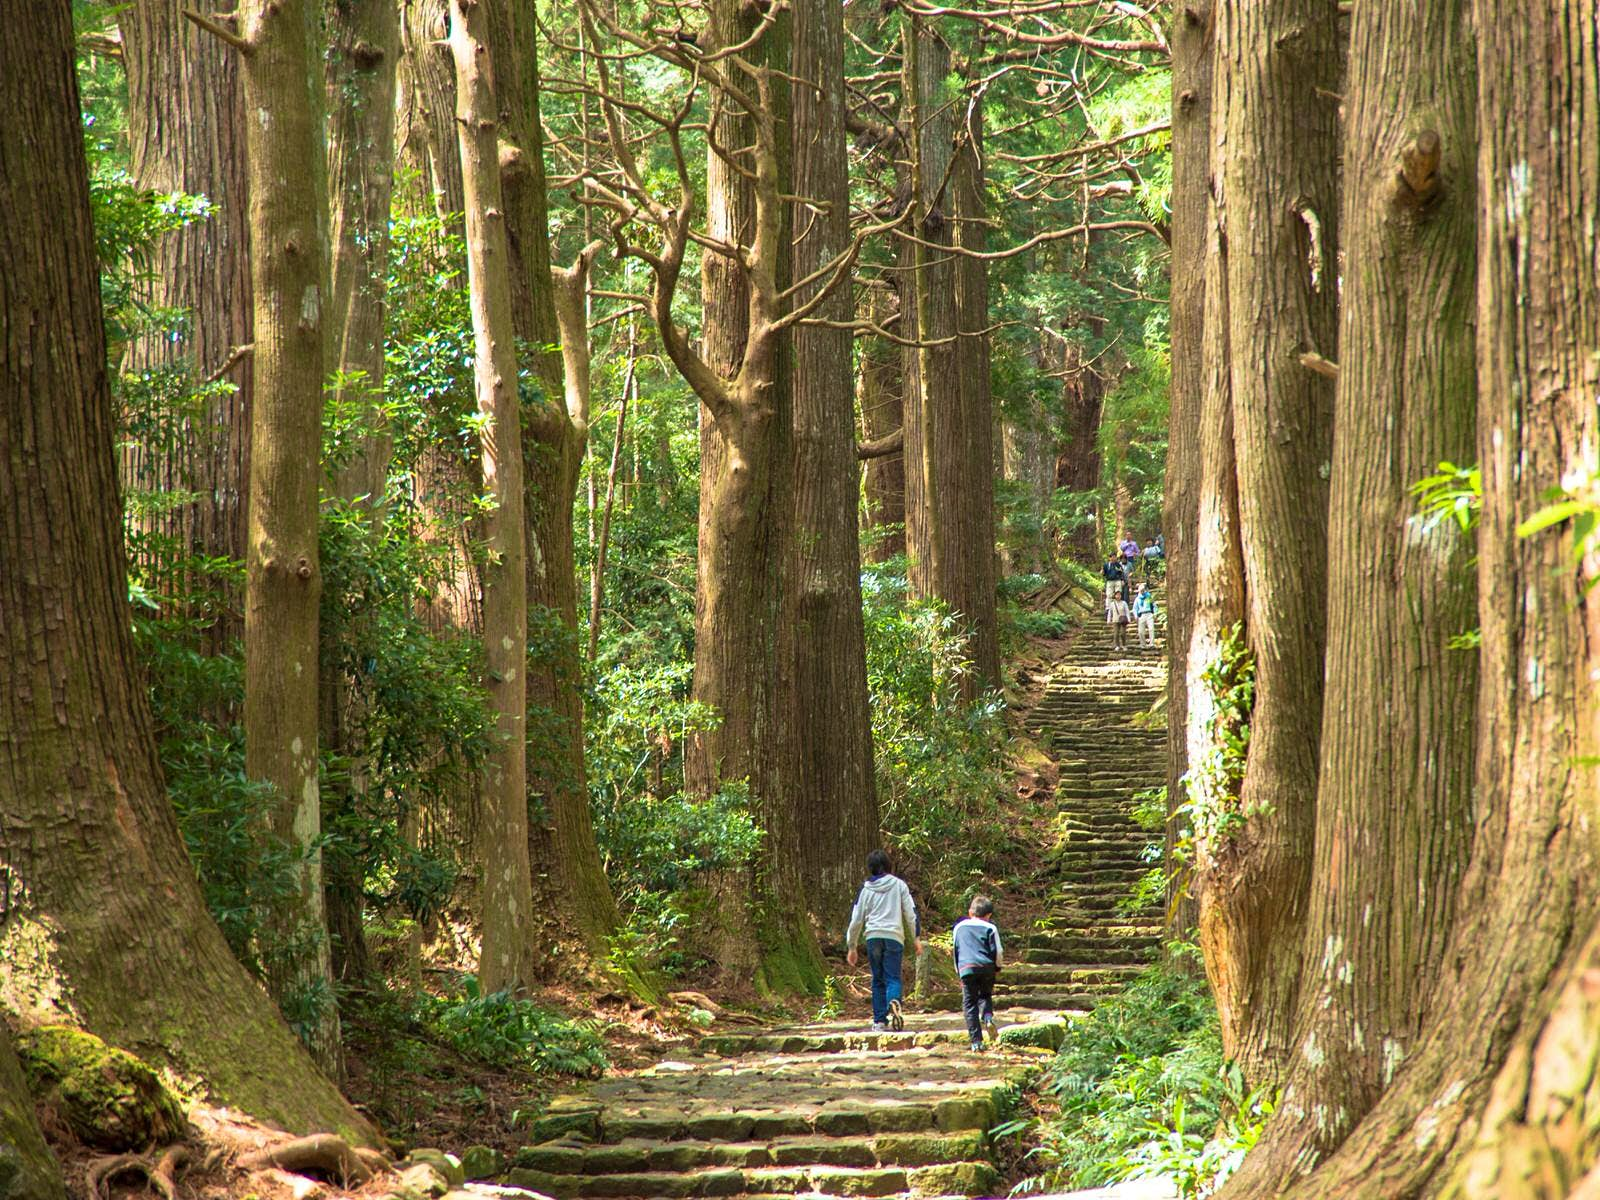 Hiking the Kumano Kodō: Japan's ancient pilgrimage route